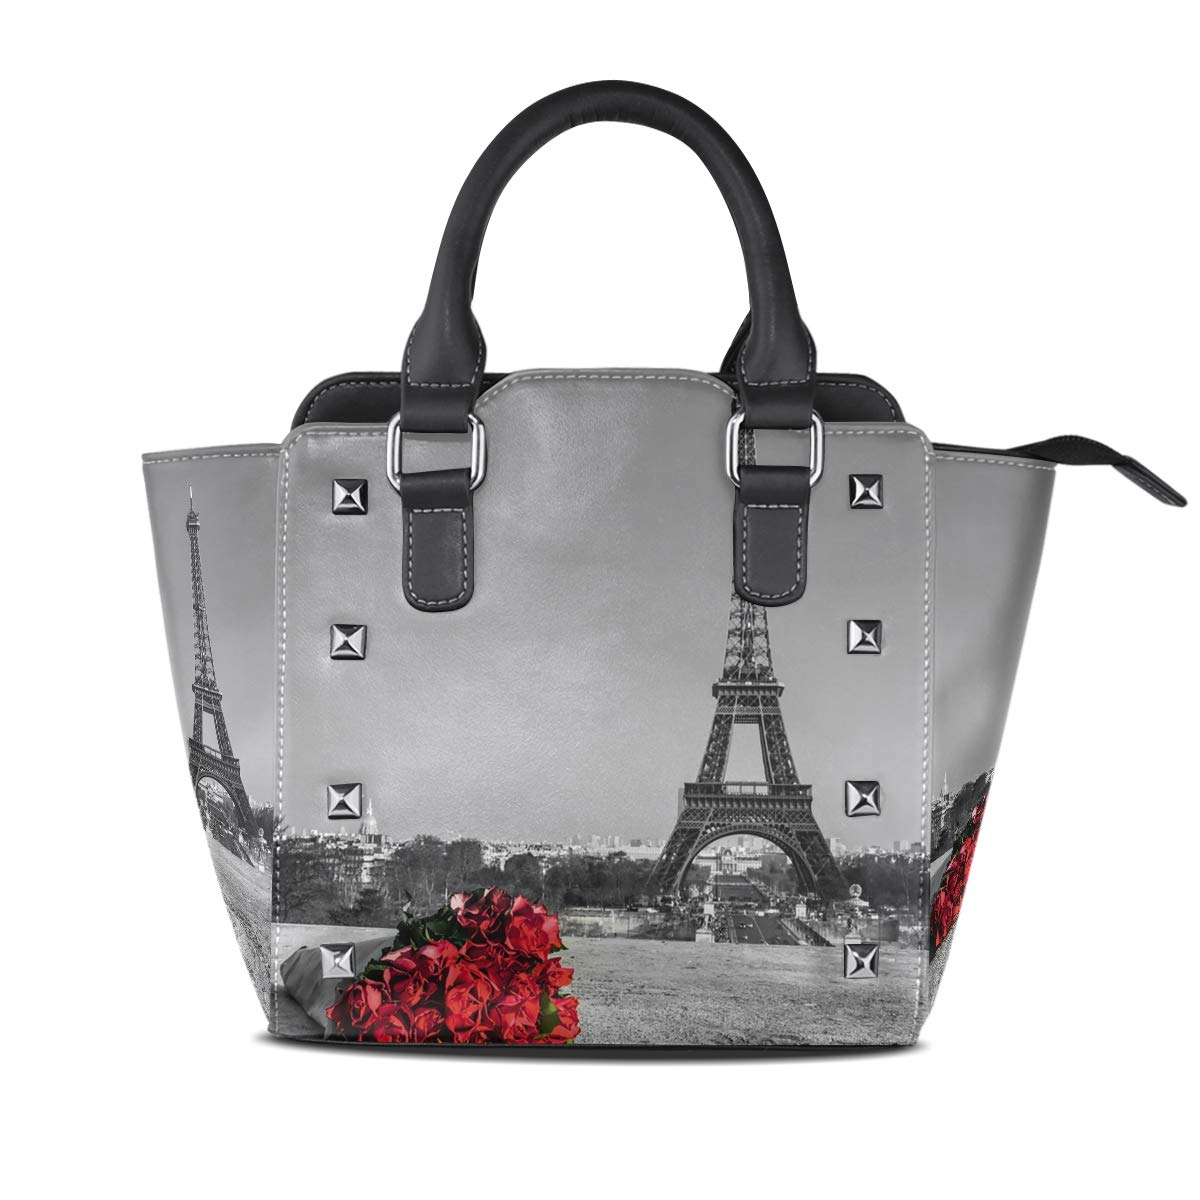 Design 1 Handbag Red pink With Romantic Eiffel Tower Genuine Leather Tote Rivet Bag Shoulder Strap Top Handle Women